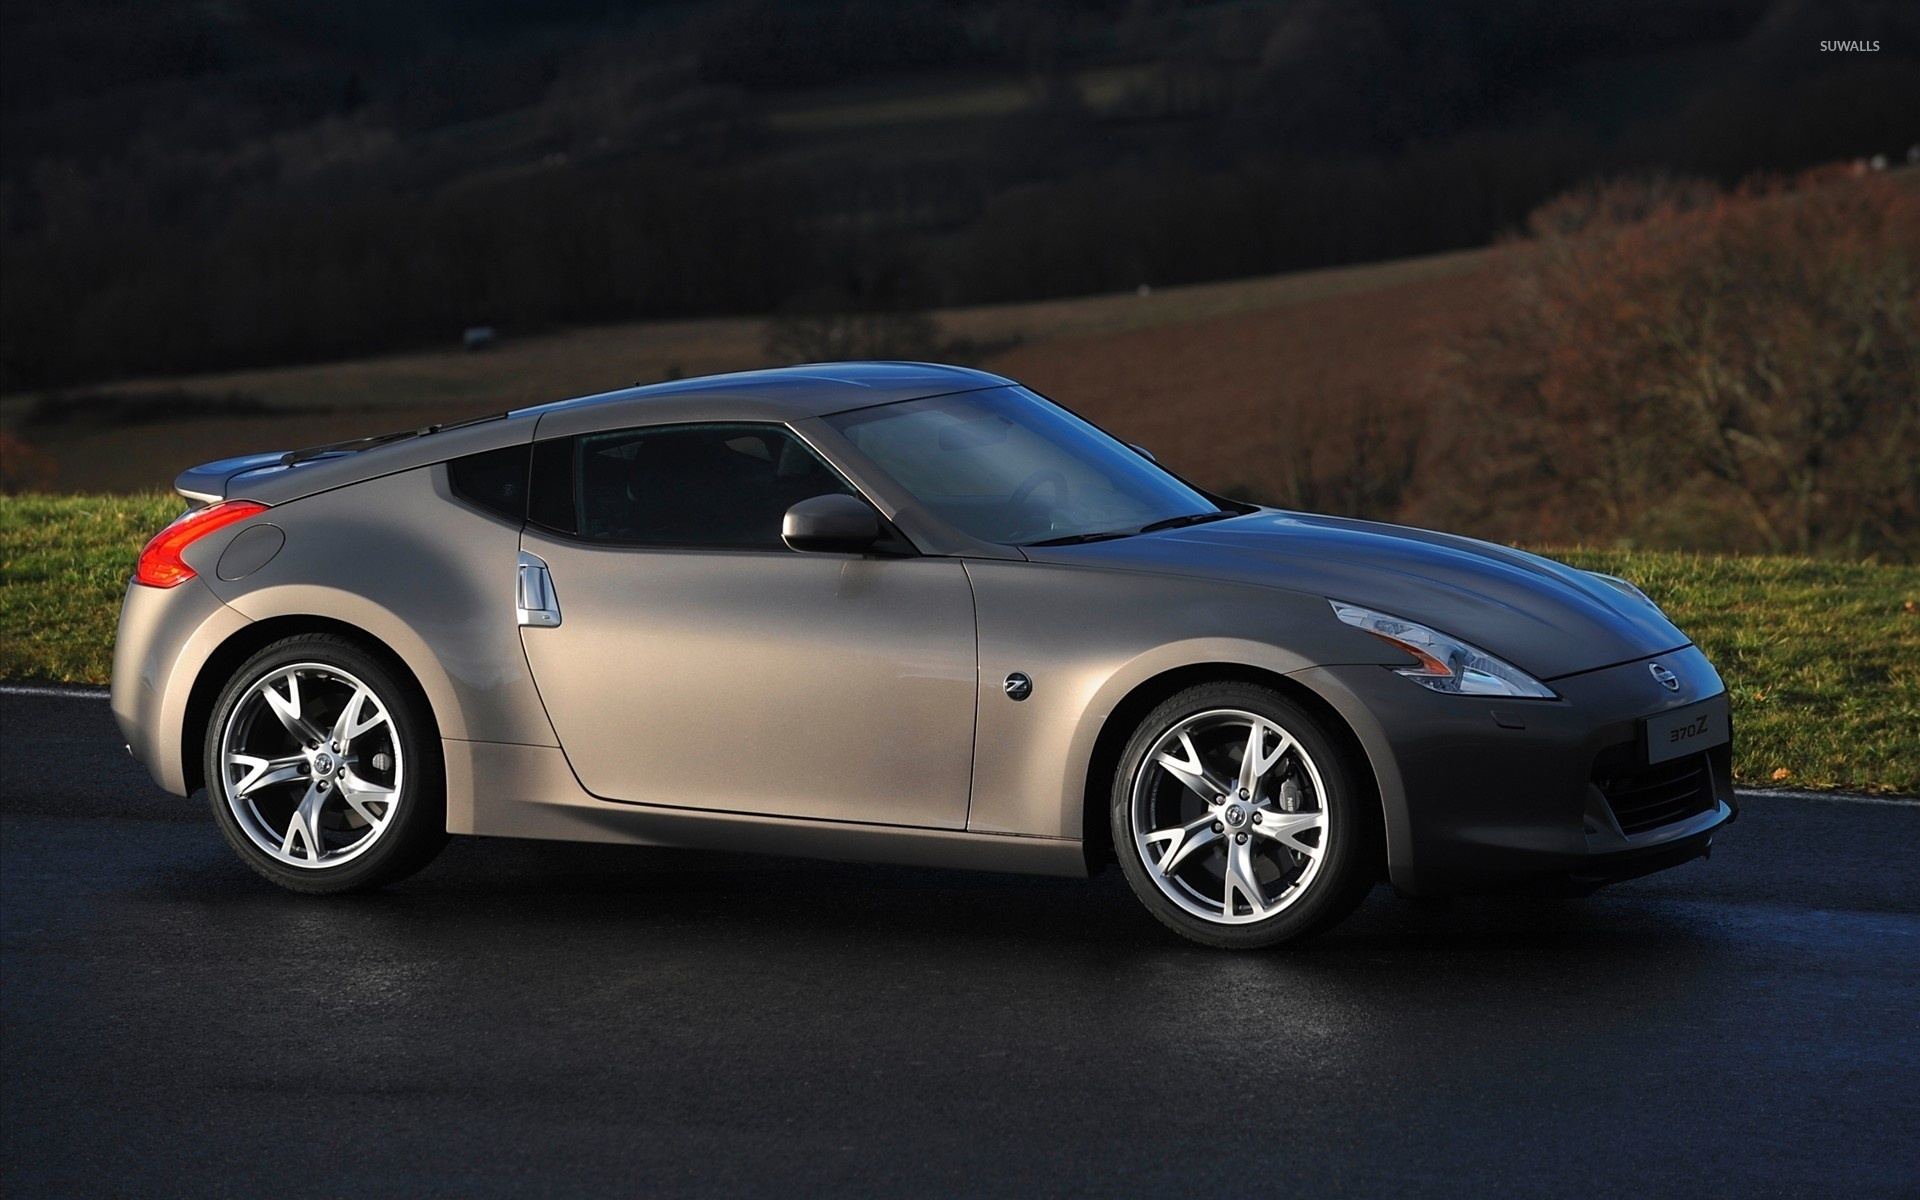 Nissan 370Z Wallpaper Nissan Cars Wallpapers in jpg format for ...